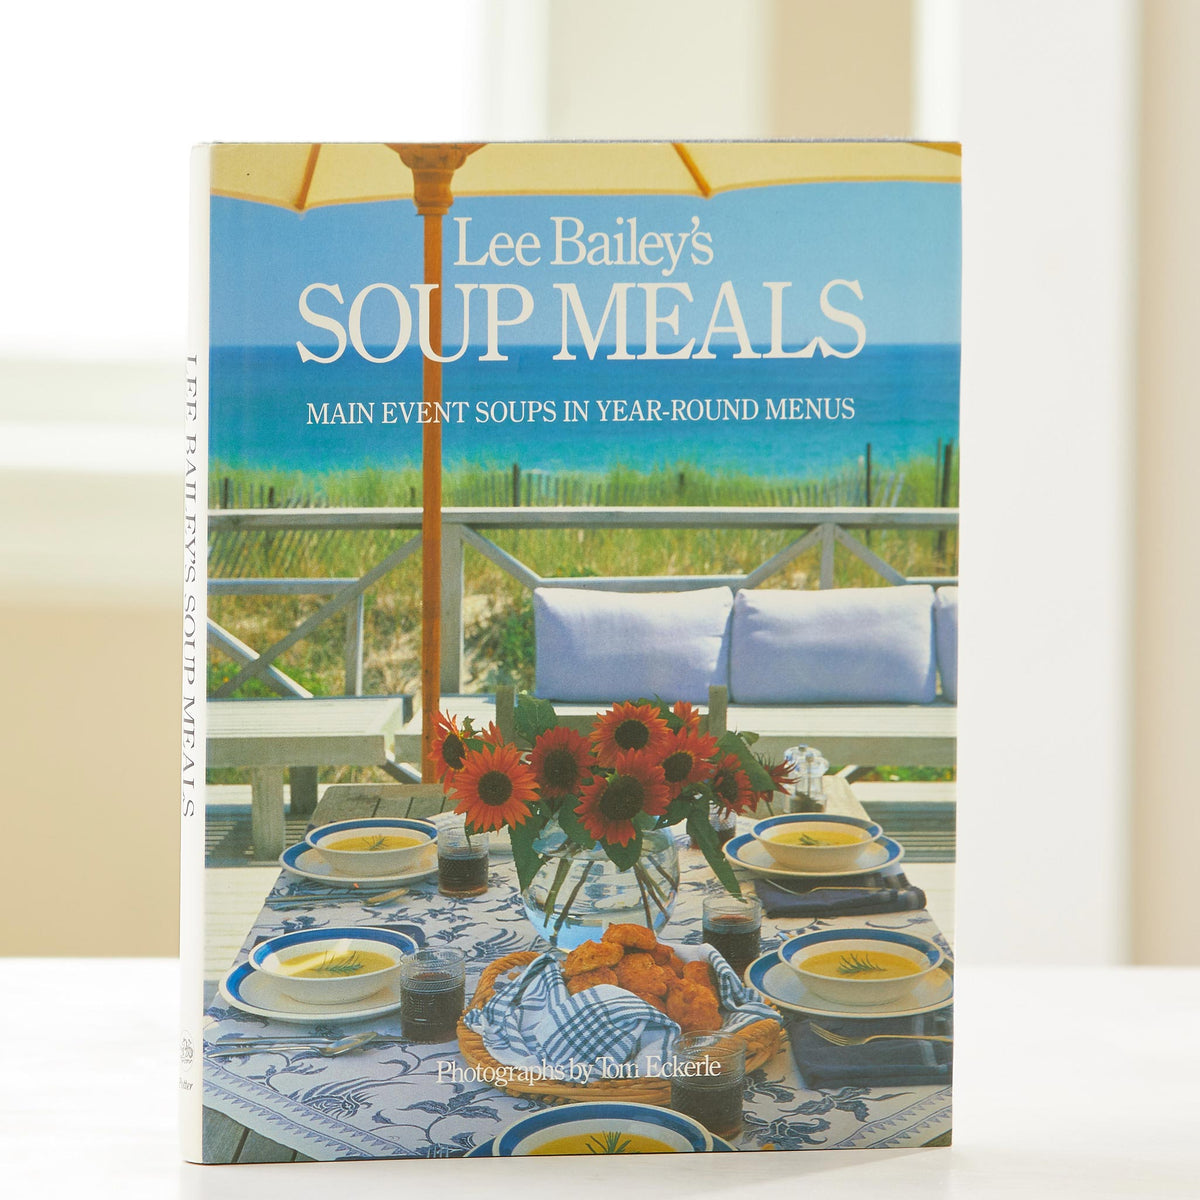 Lee Bailey's Soup Meals. Year-round soup recipes for all occasions. Warm weather or cold, lunch or dinner. This is the best vintage soup cookbook.